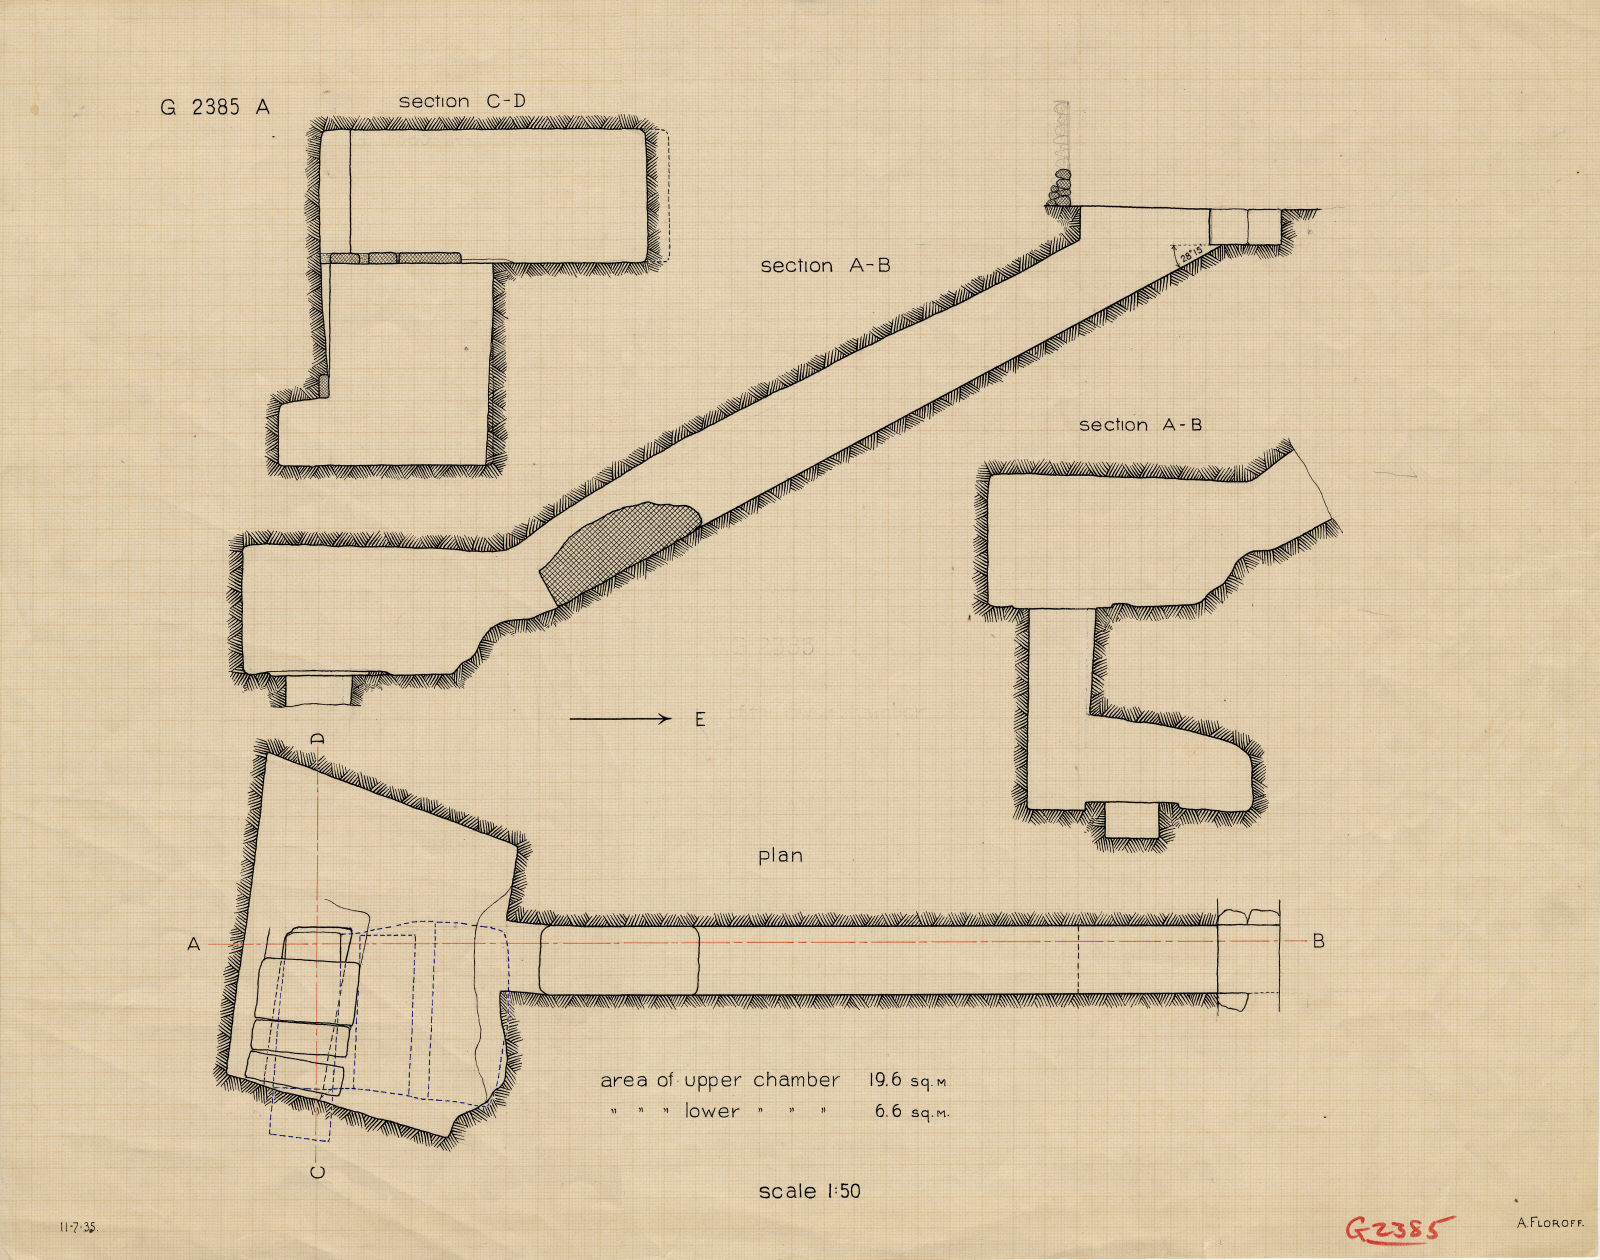 Maps and plans: G 2385, Shaft A